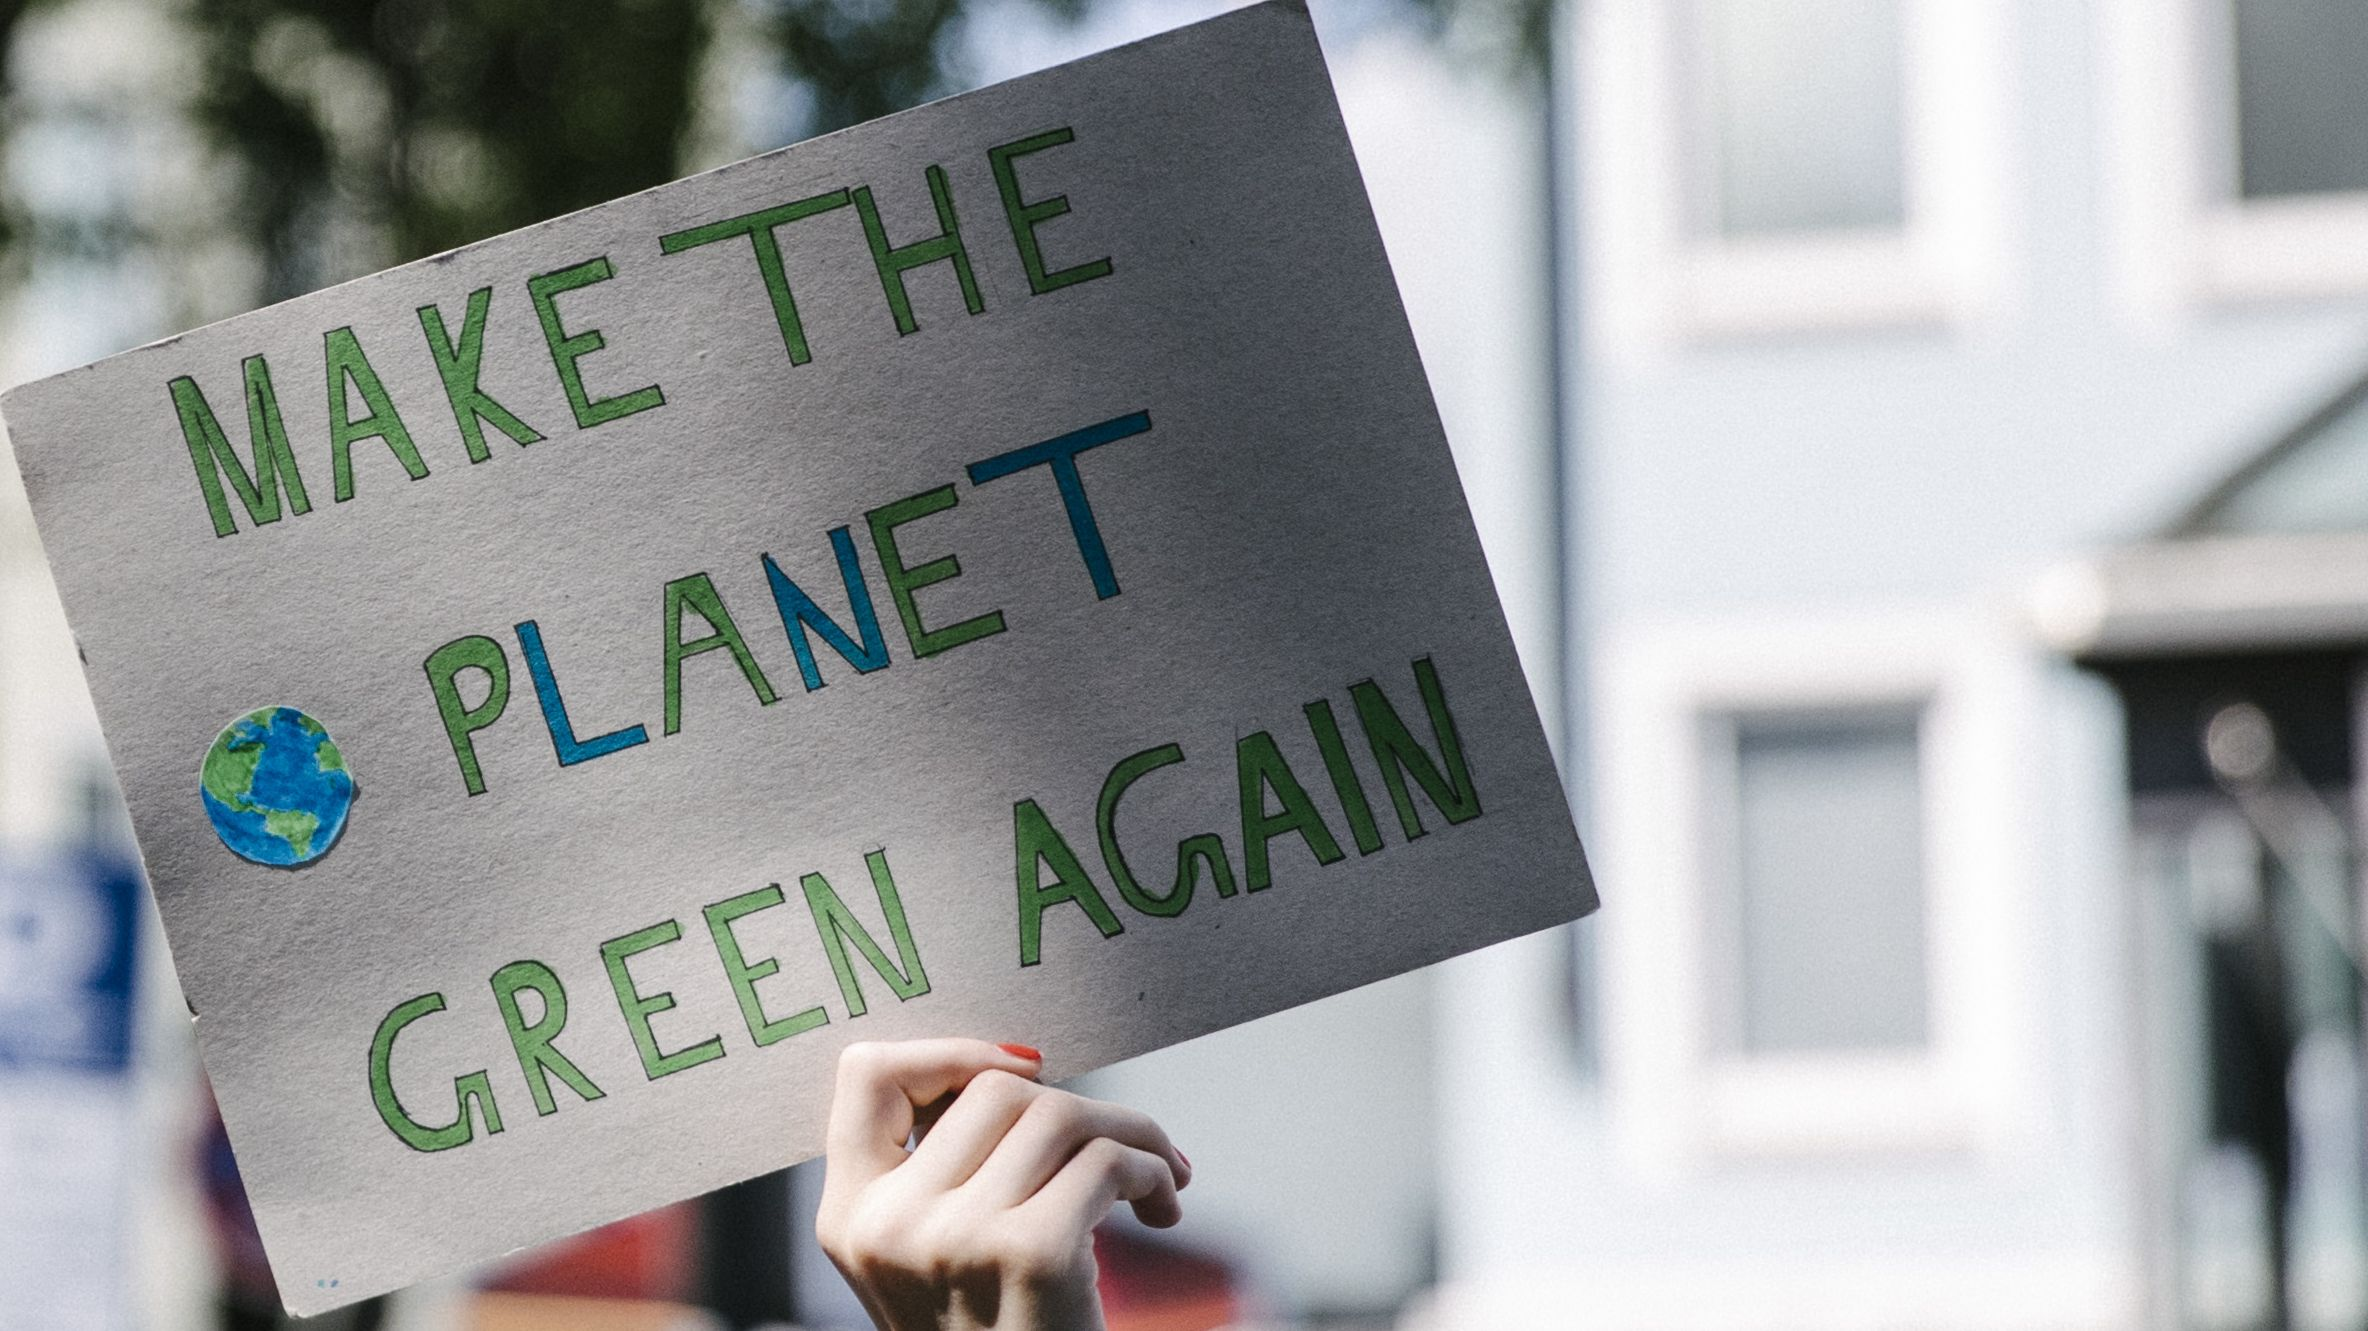 Klimaschutz Fridays for Future Demonstration